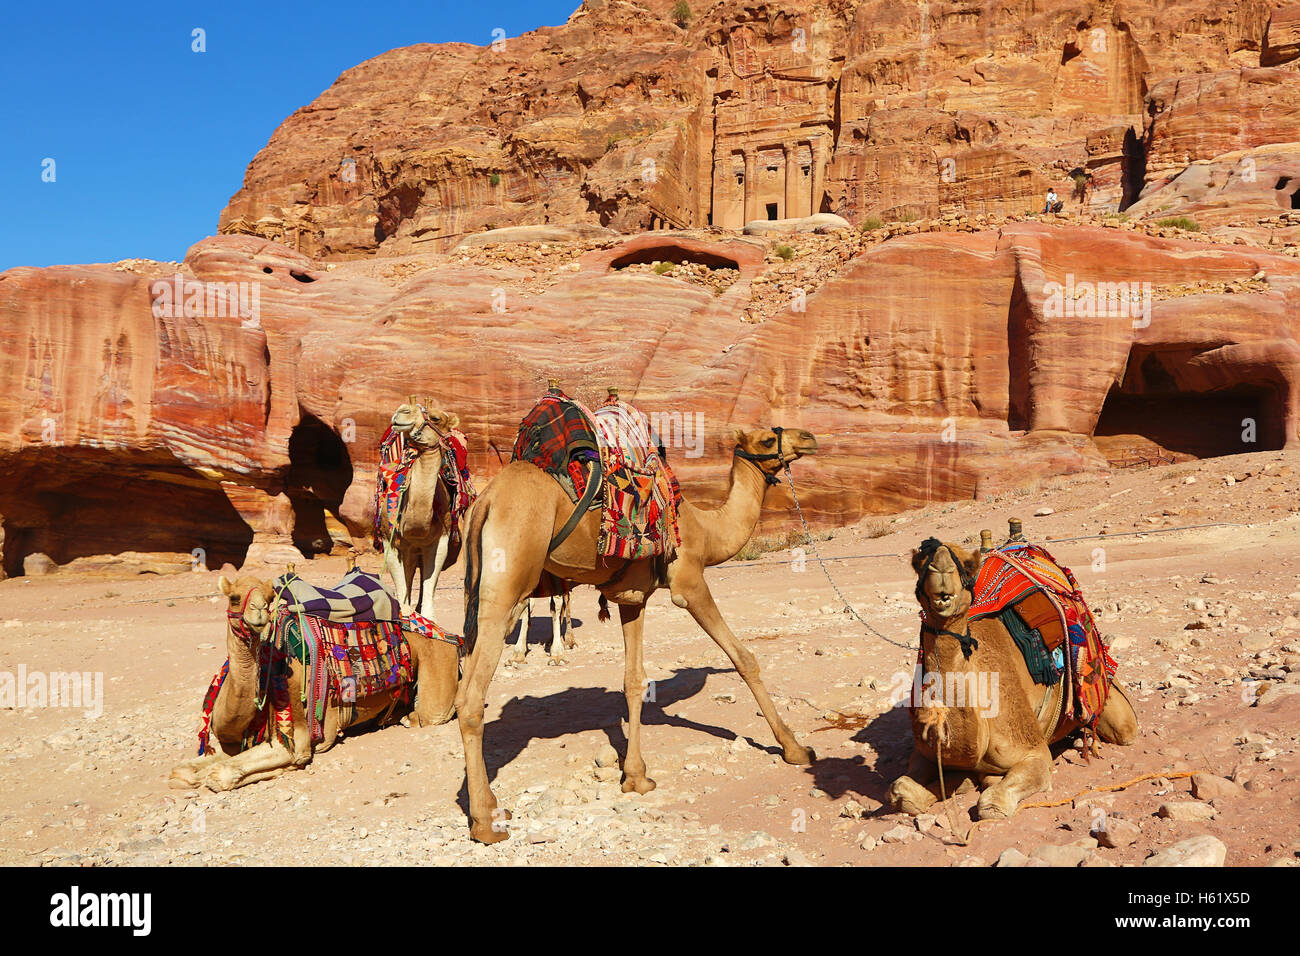 Camels and the Royal Tombs in the rock city of Petra, Jordan Stock Photo